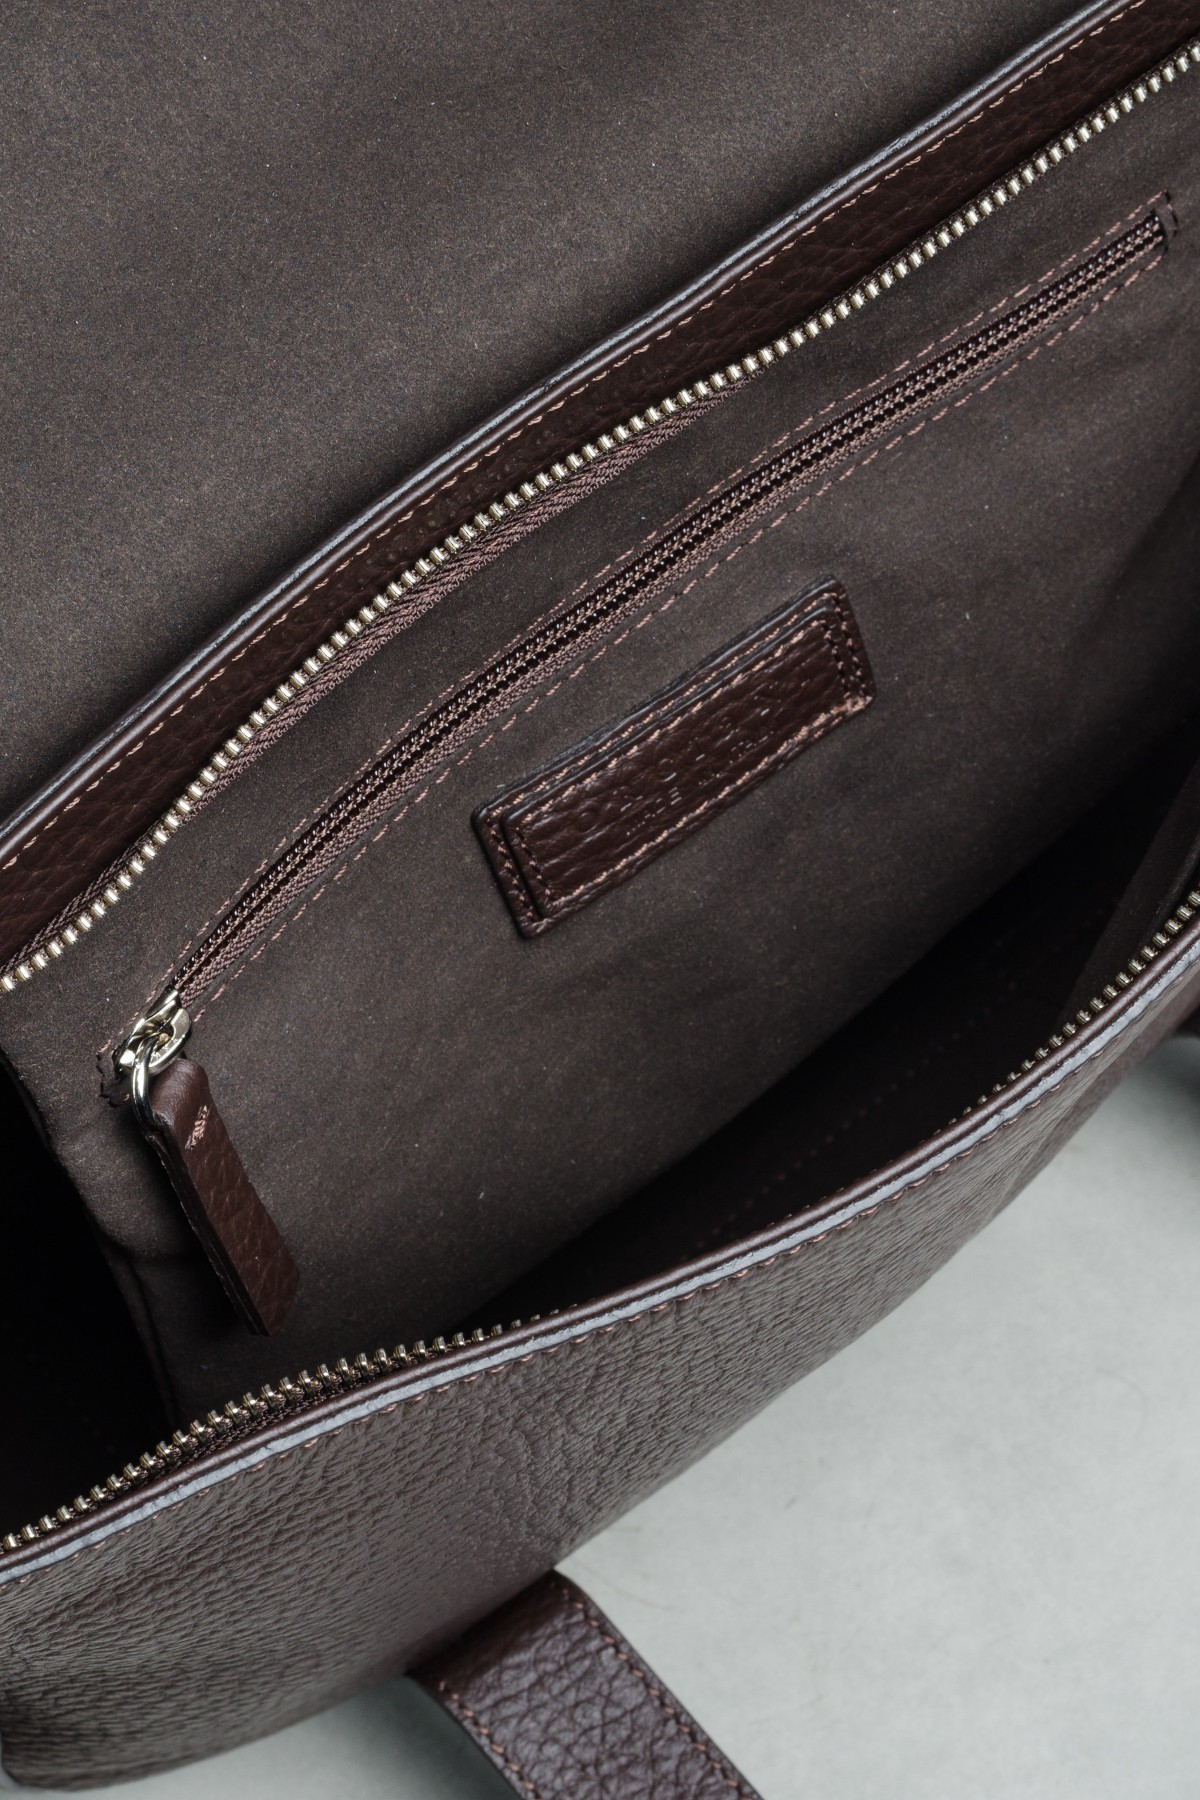 508c7b03dfb ORCIANI Bag for man S/S17 - Rione Fontana